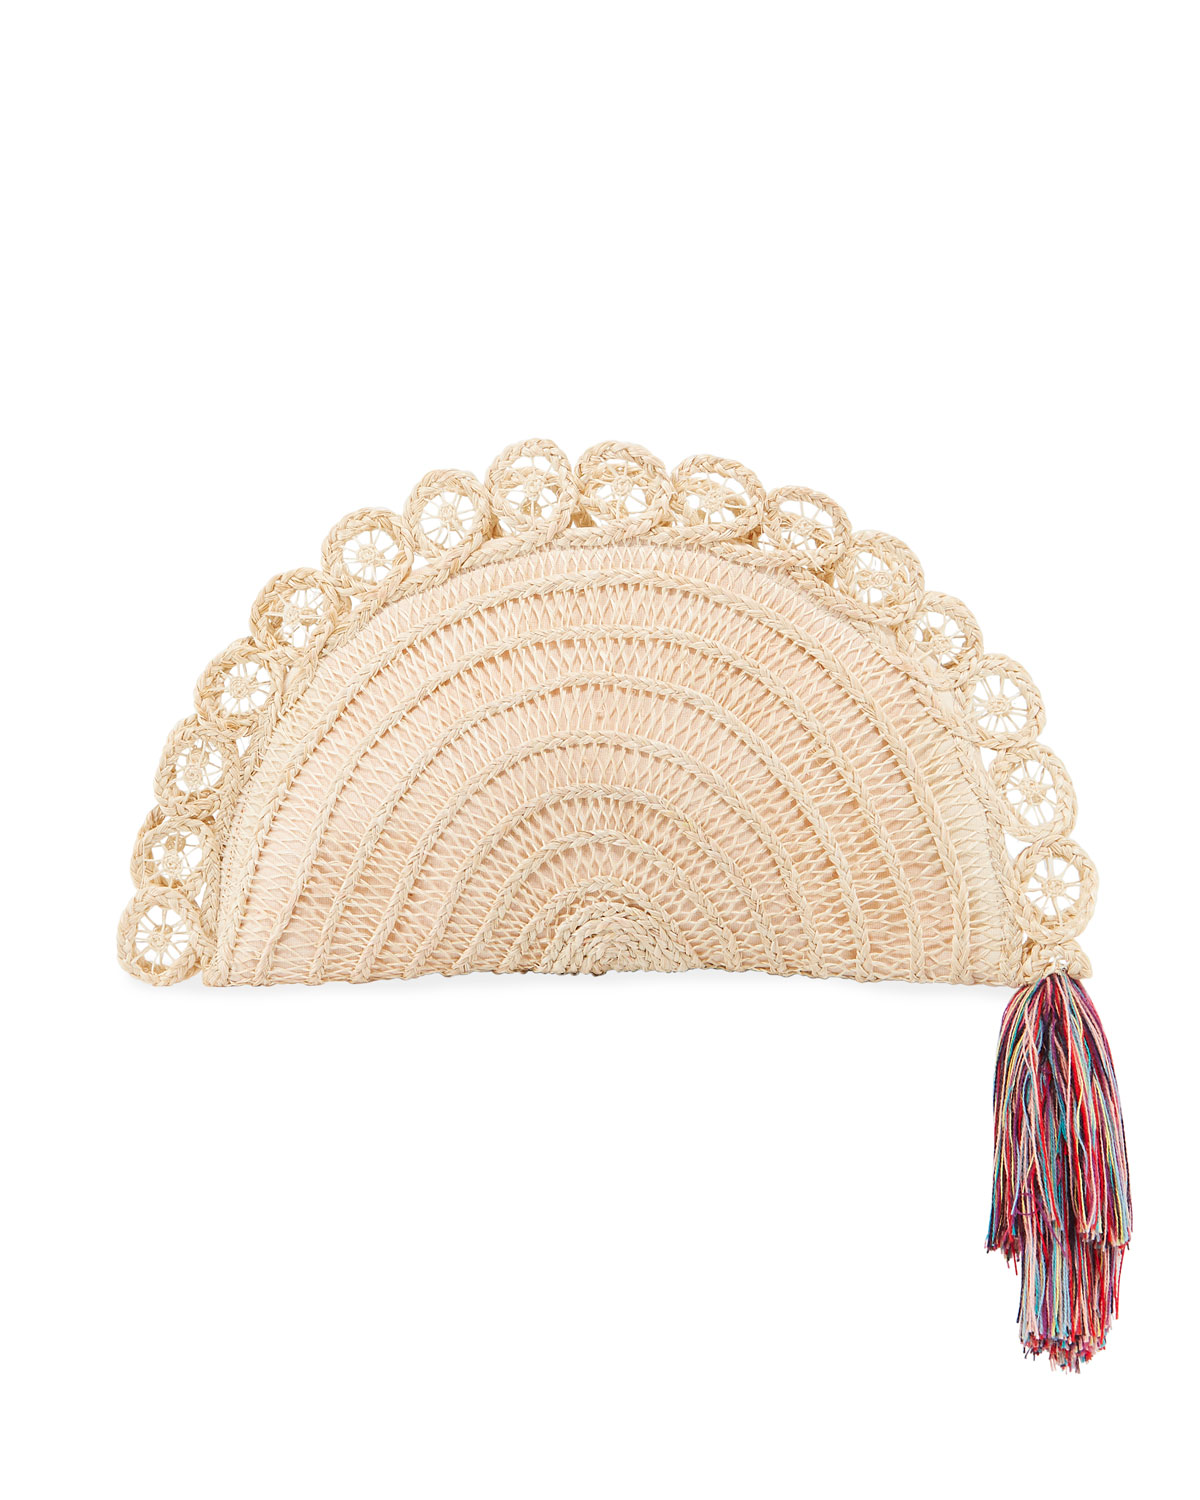 NANNACAY - COTIO Lua Straw Clutch Bag With Rainbow Tassel in Off White